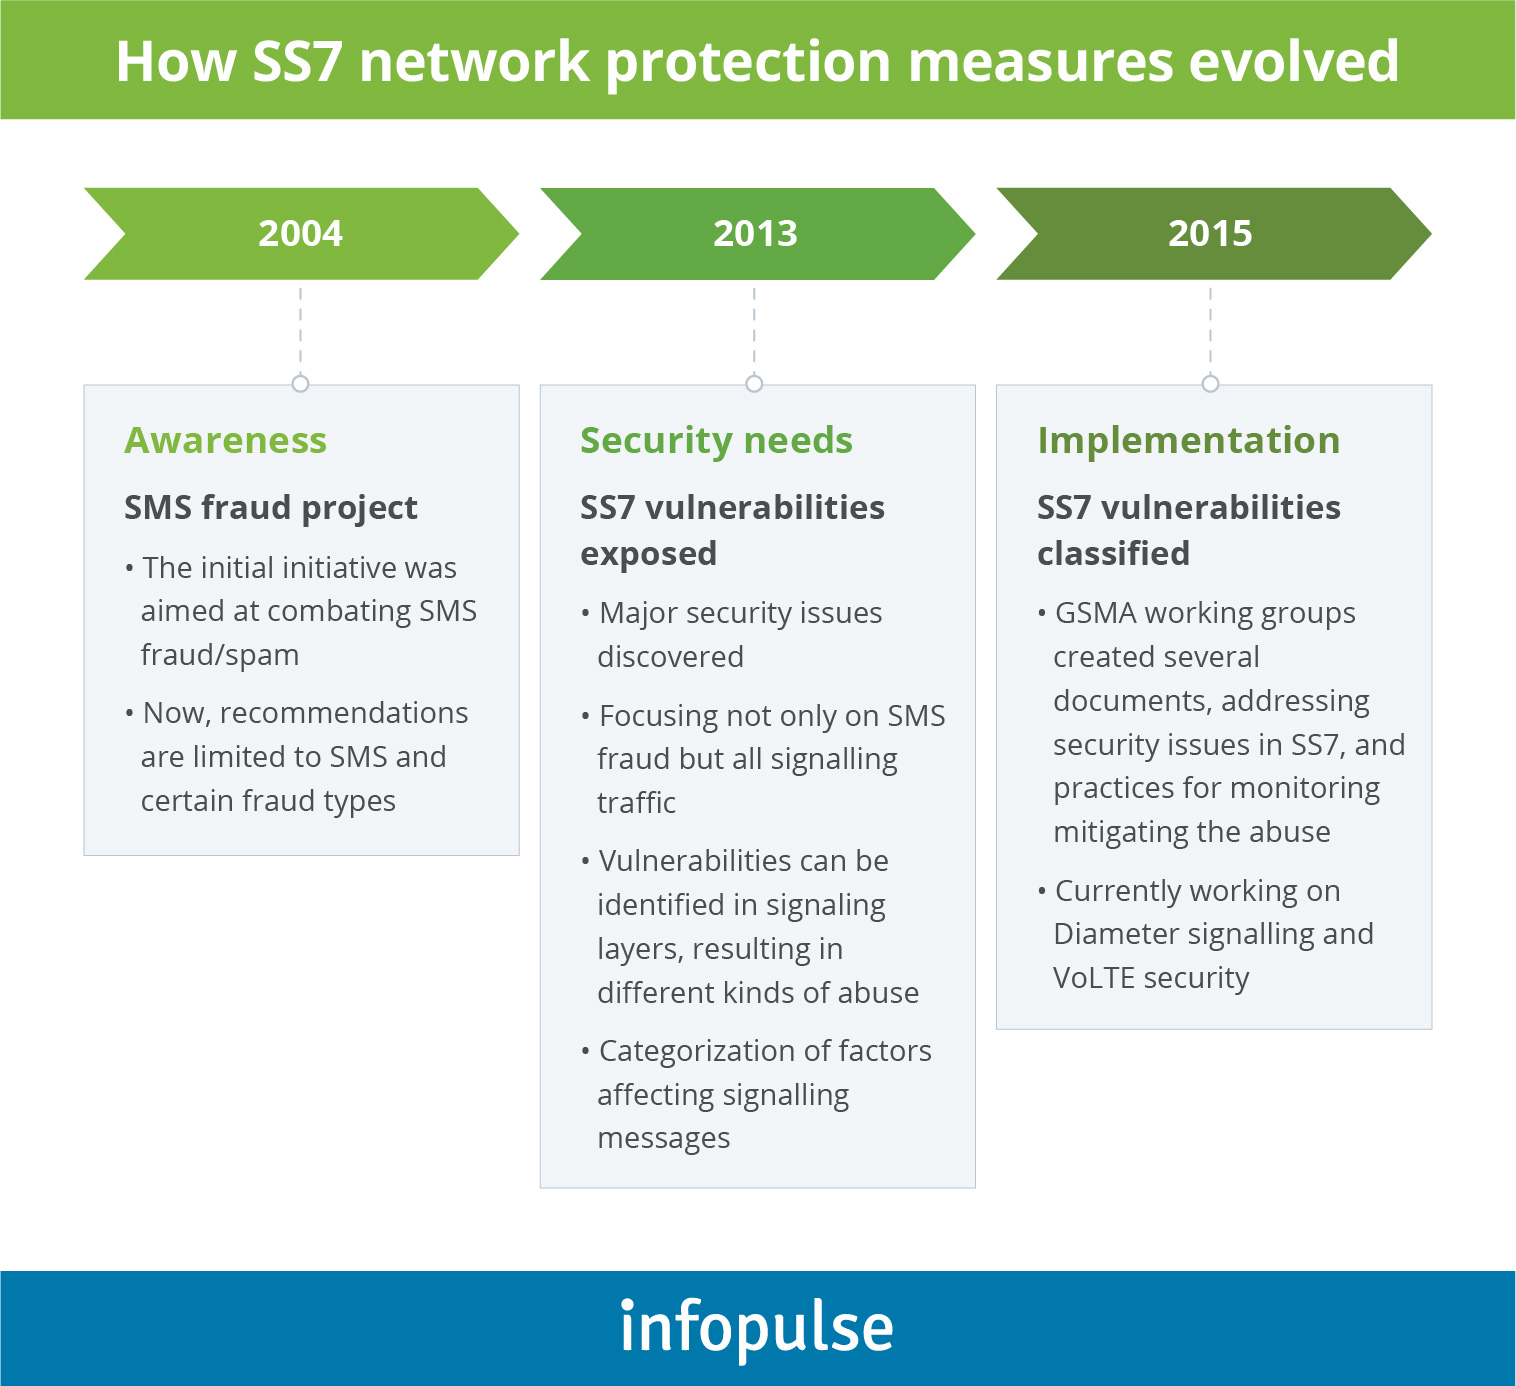 How SS7 network protection measures envolved - Infopulse - 1